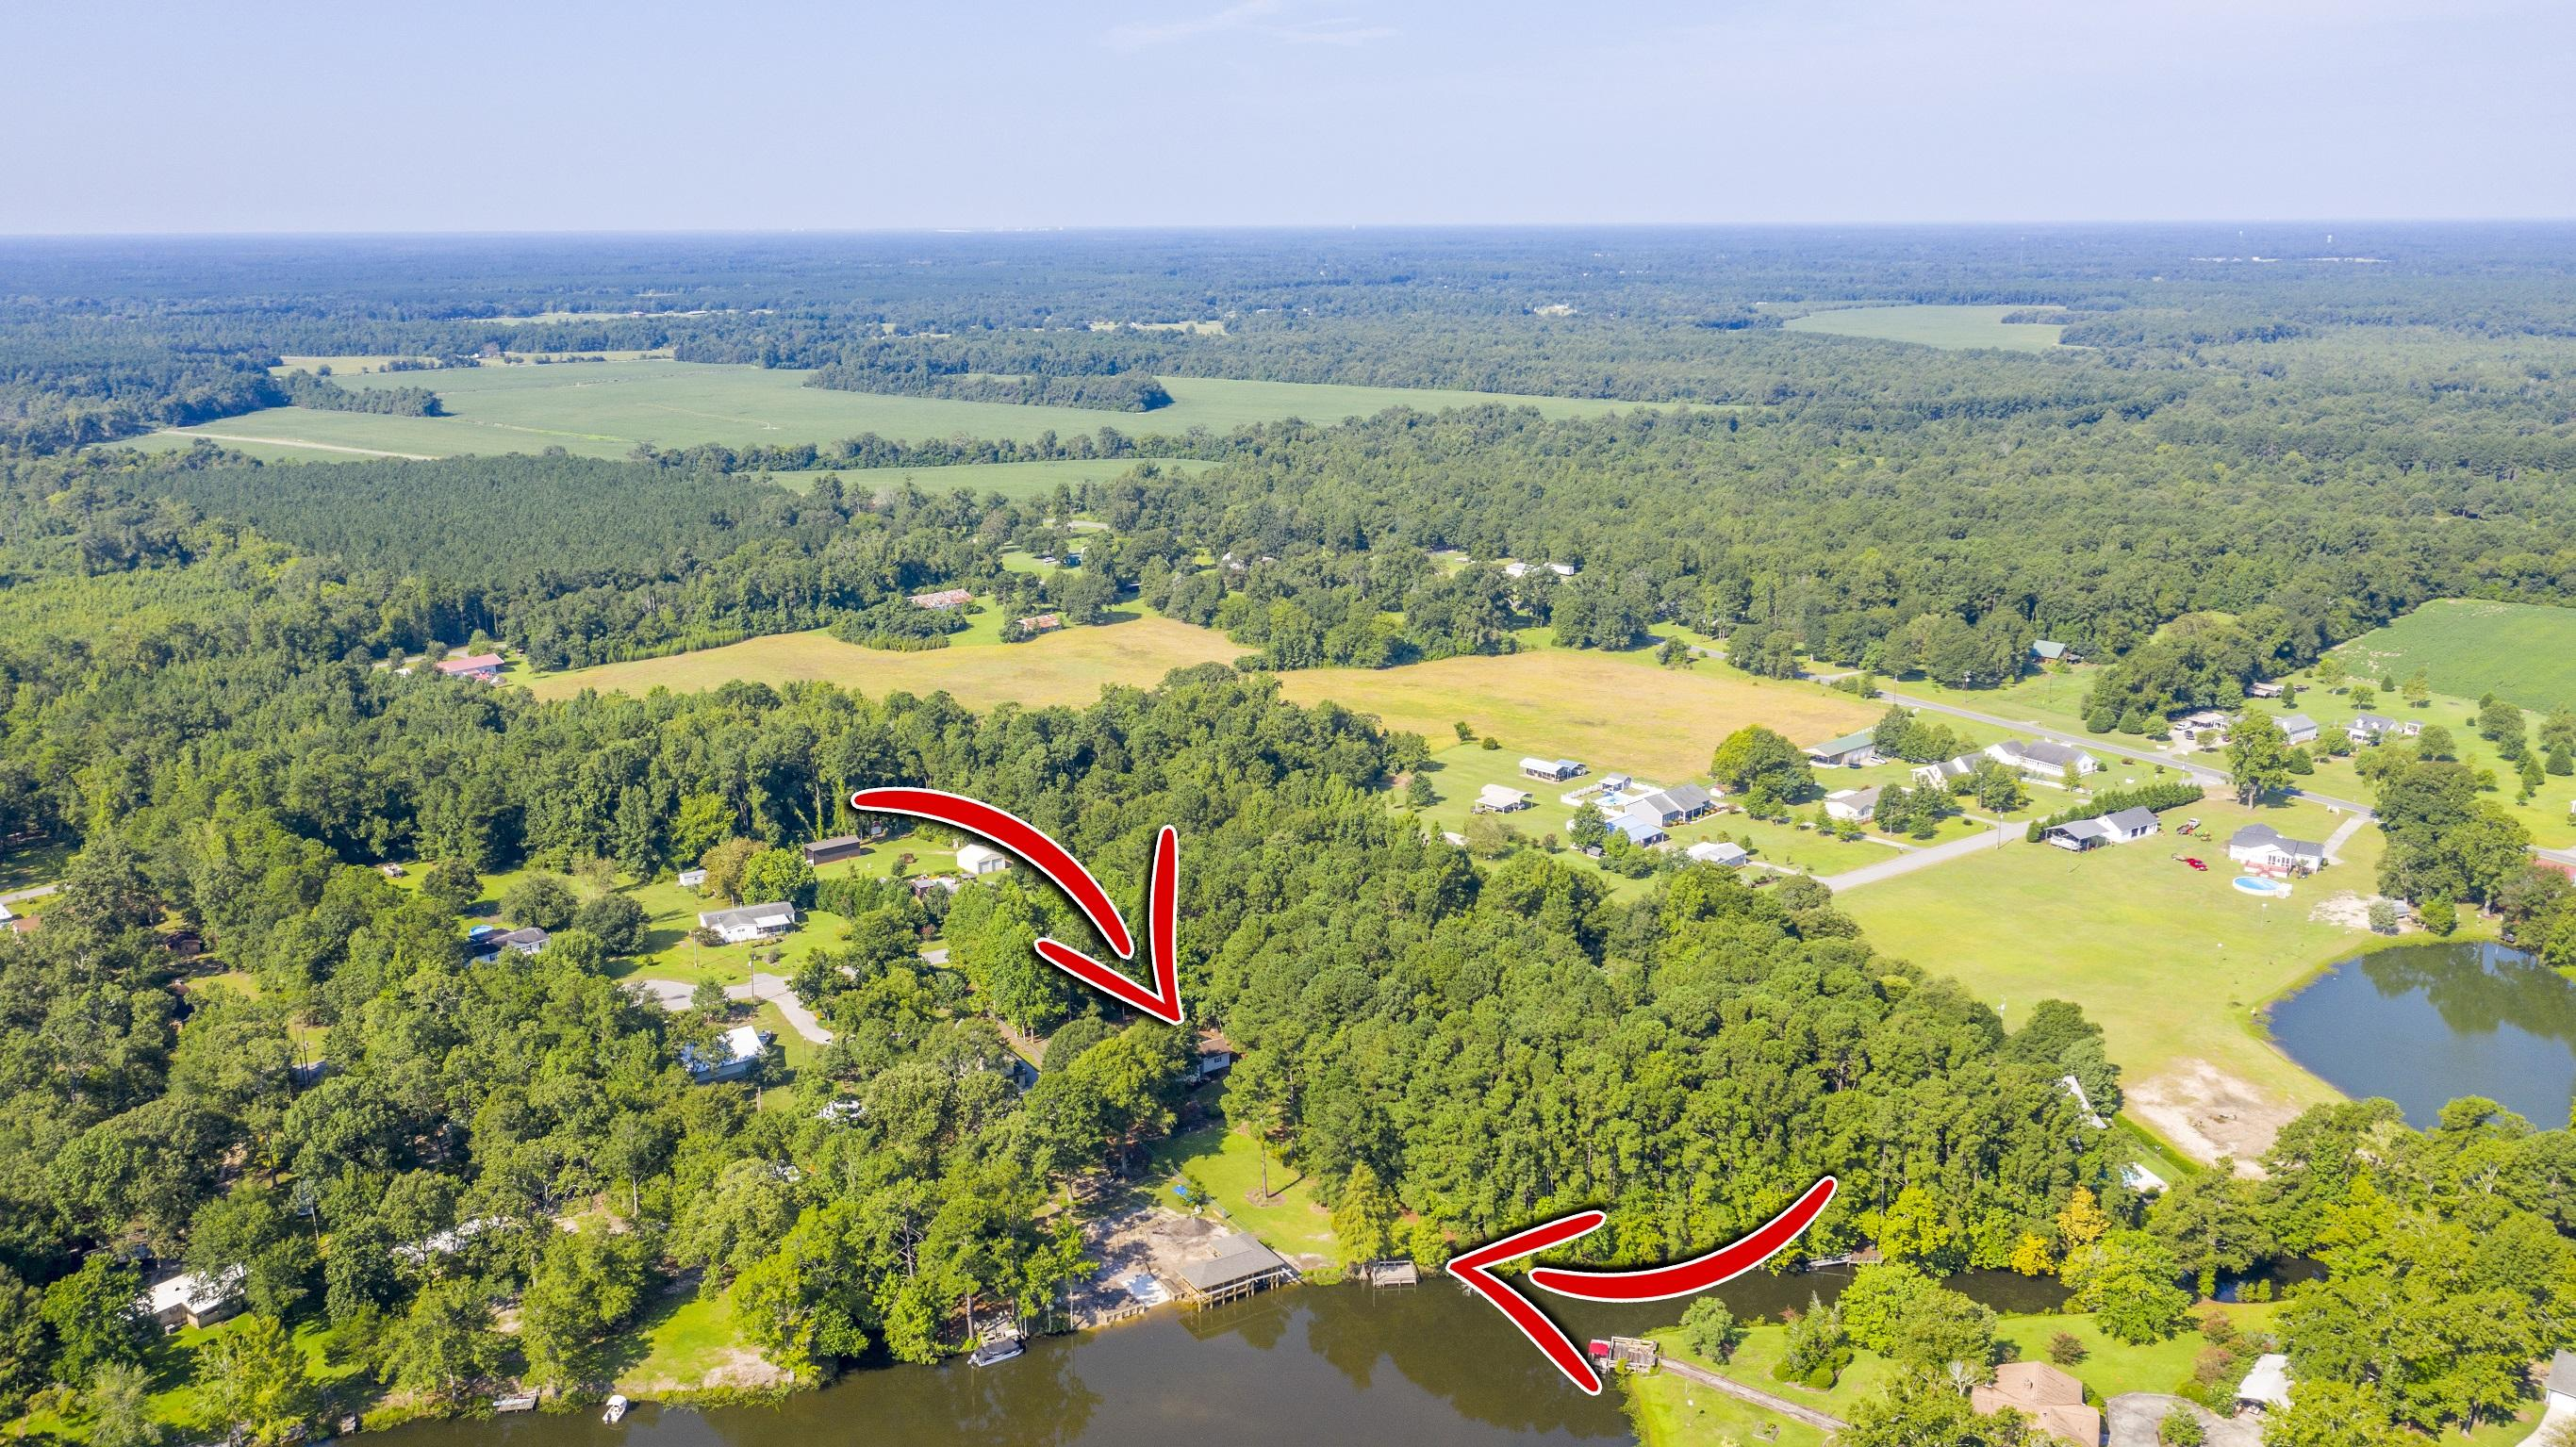 Plantation II Homes For Sale - 155 Meredith, Eutawville, SC - 0